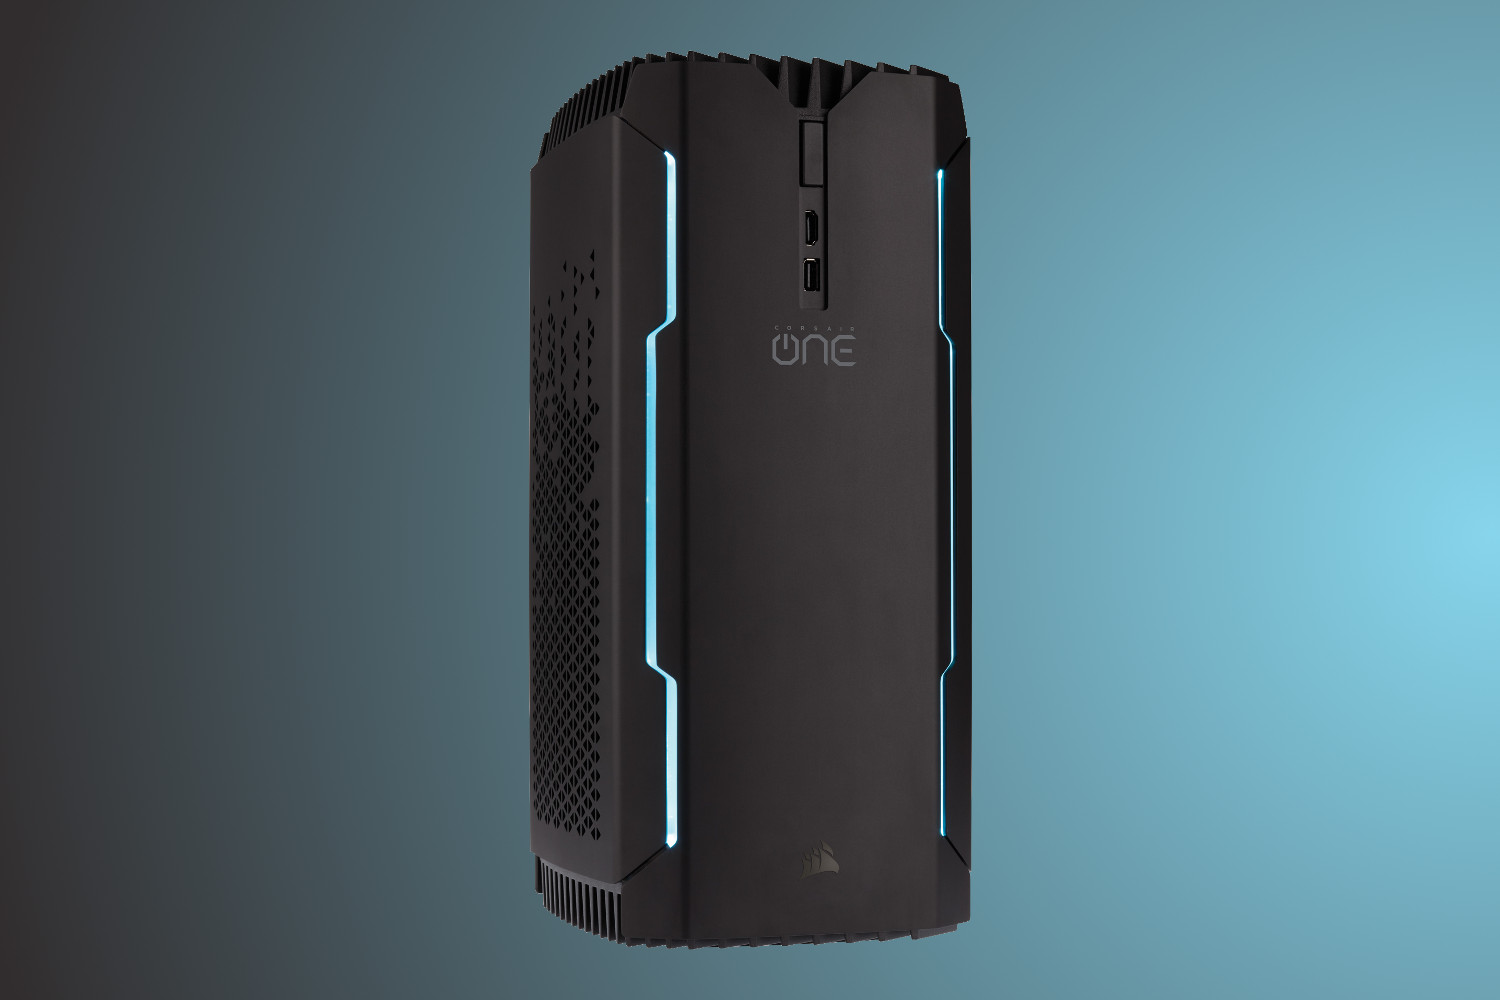 Corsair One Enthusiast Gaming PC Is Now Ready to Pre-Order